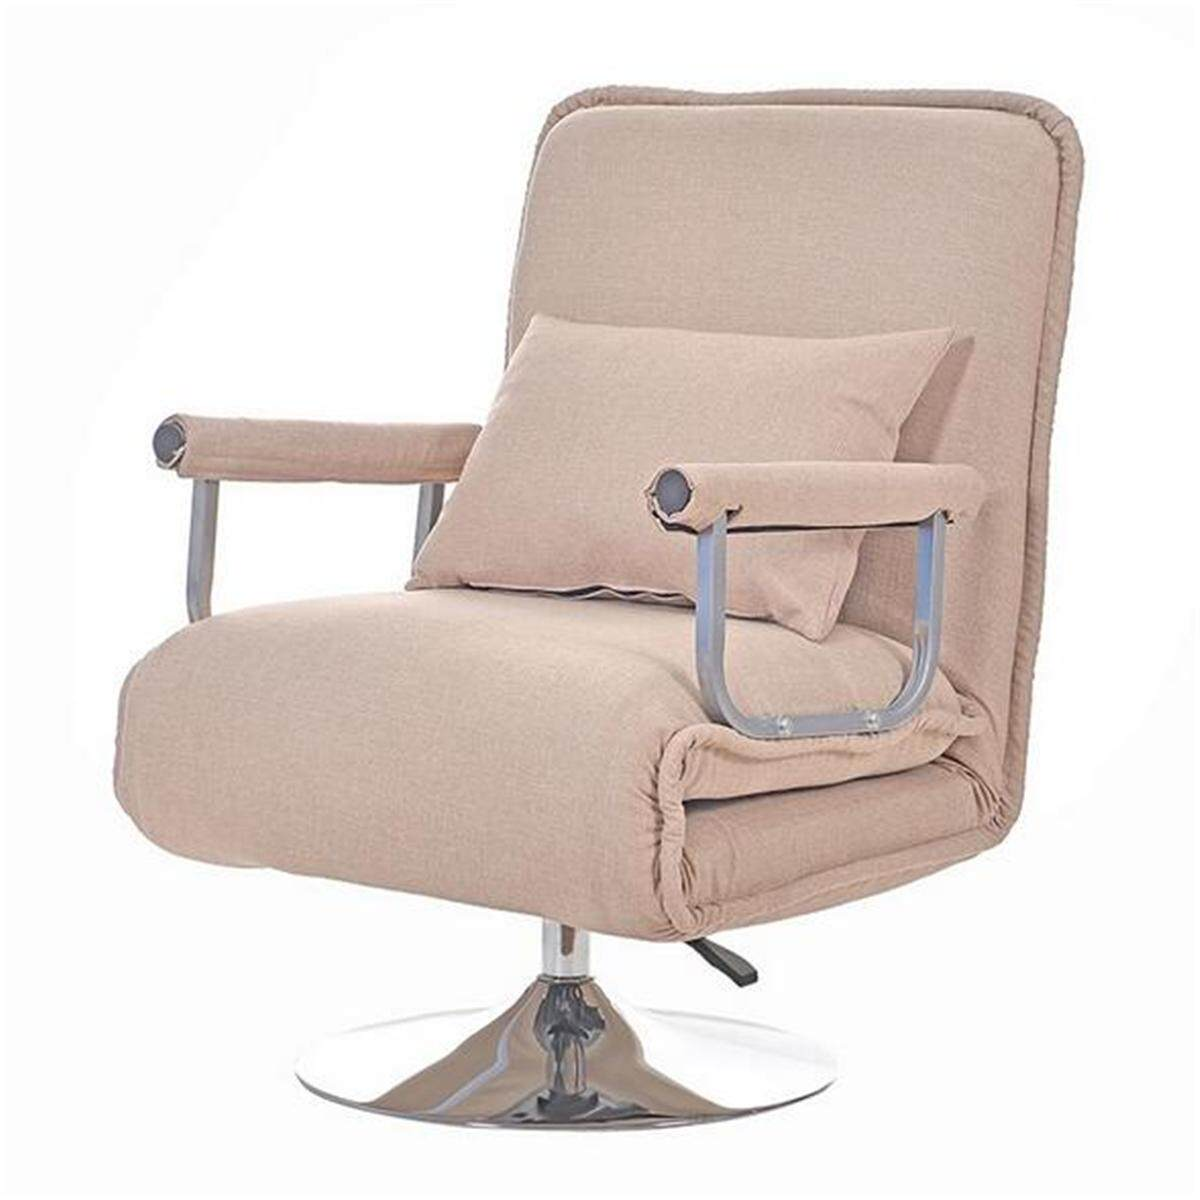 Convertible Rotation Sofa Bed Folding Arm Chair Sleeper Recliner Lounge Couch